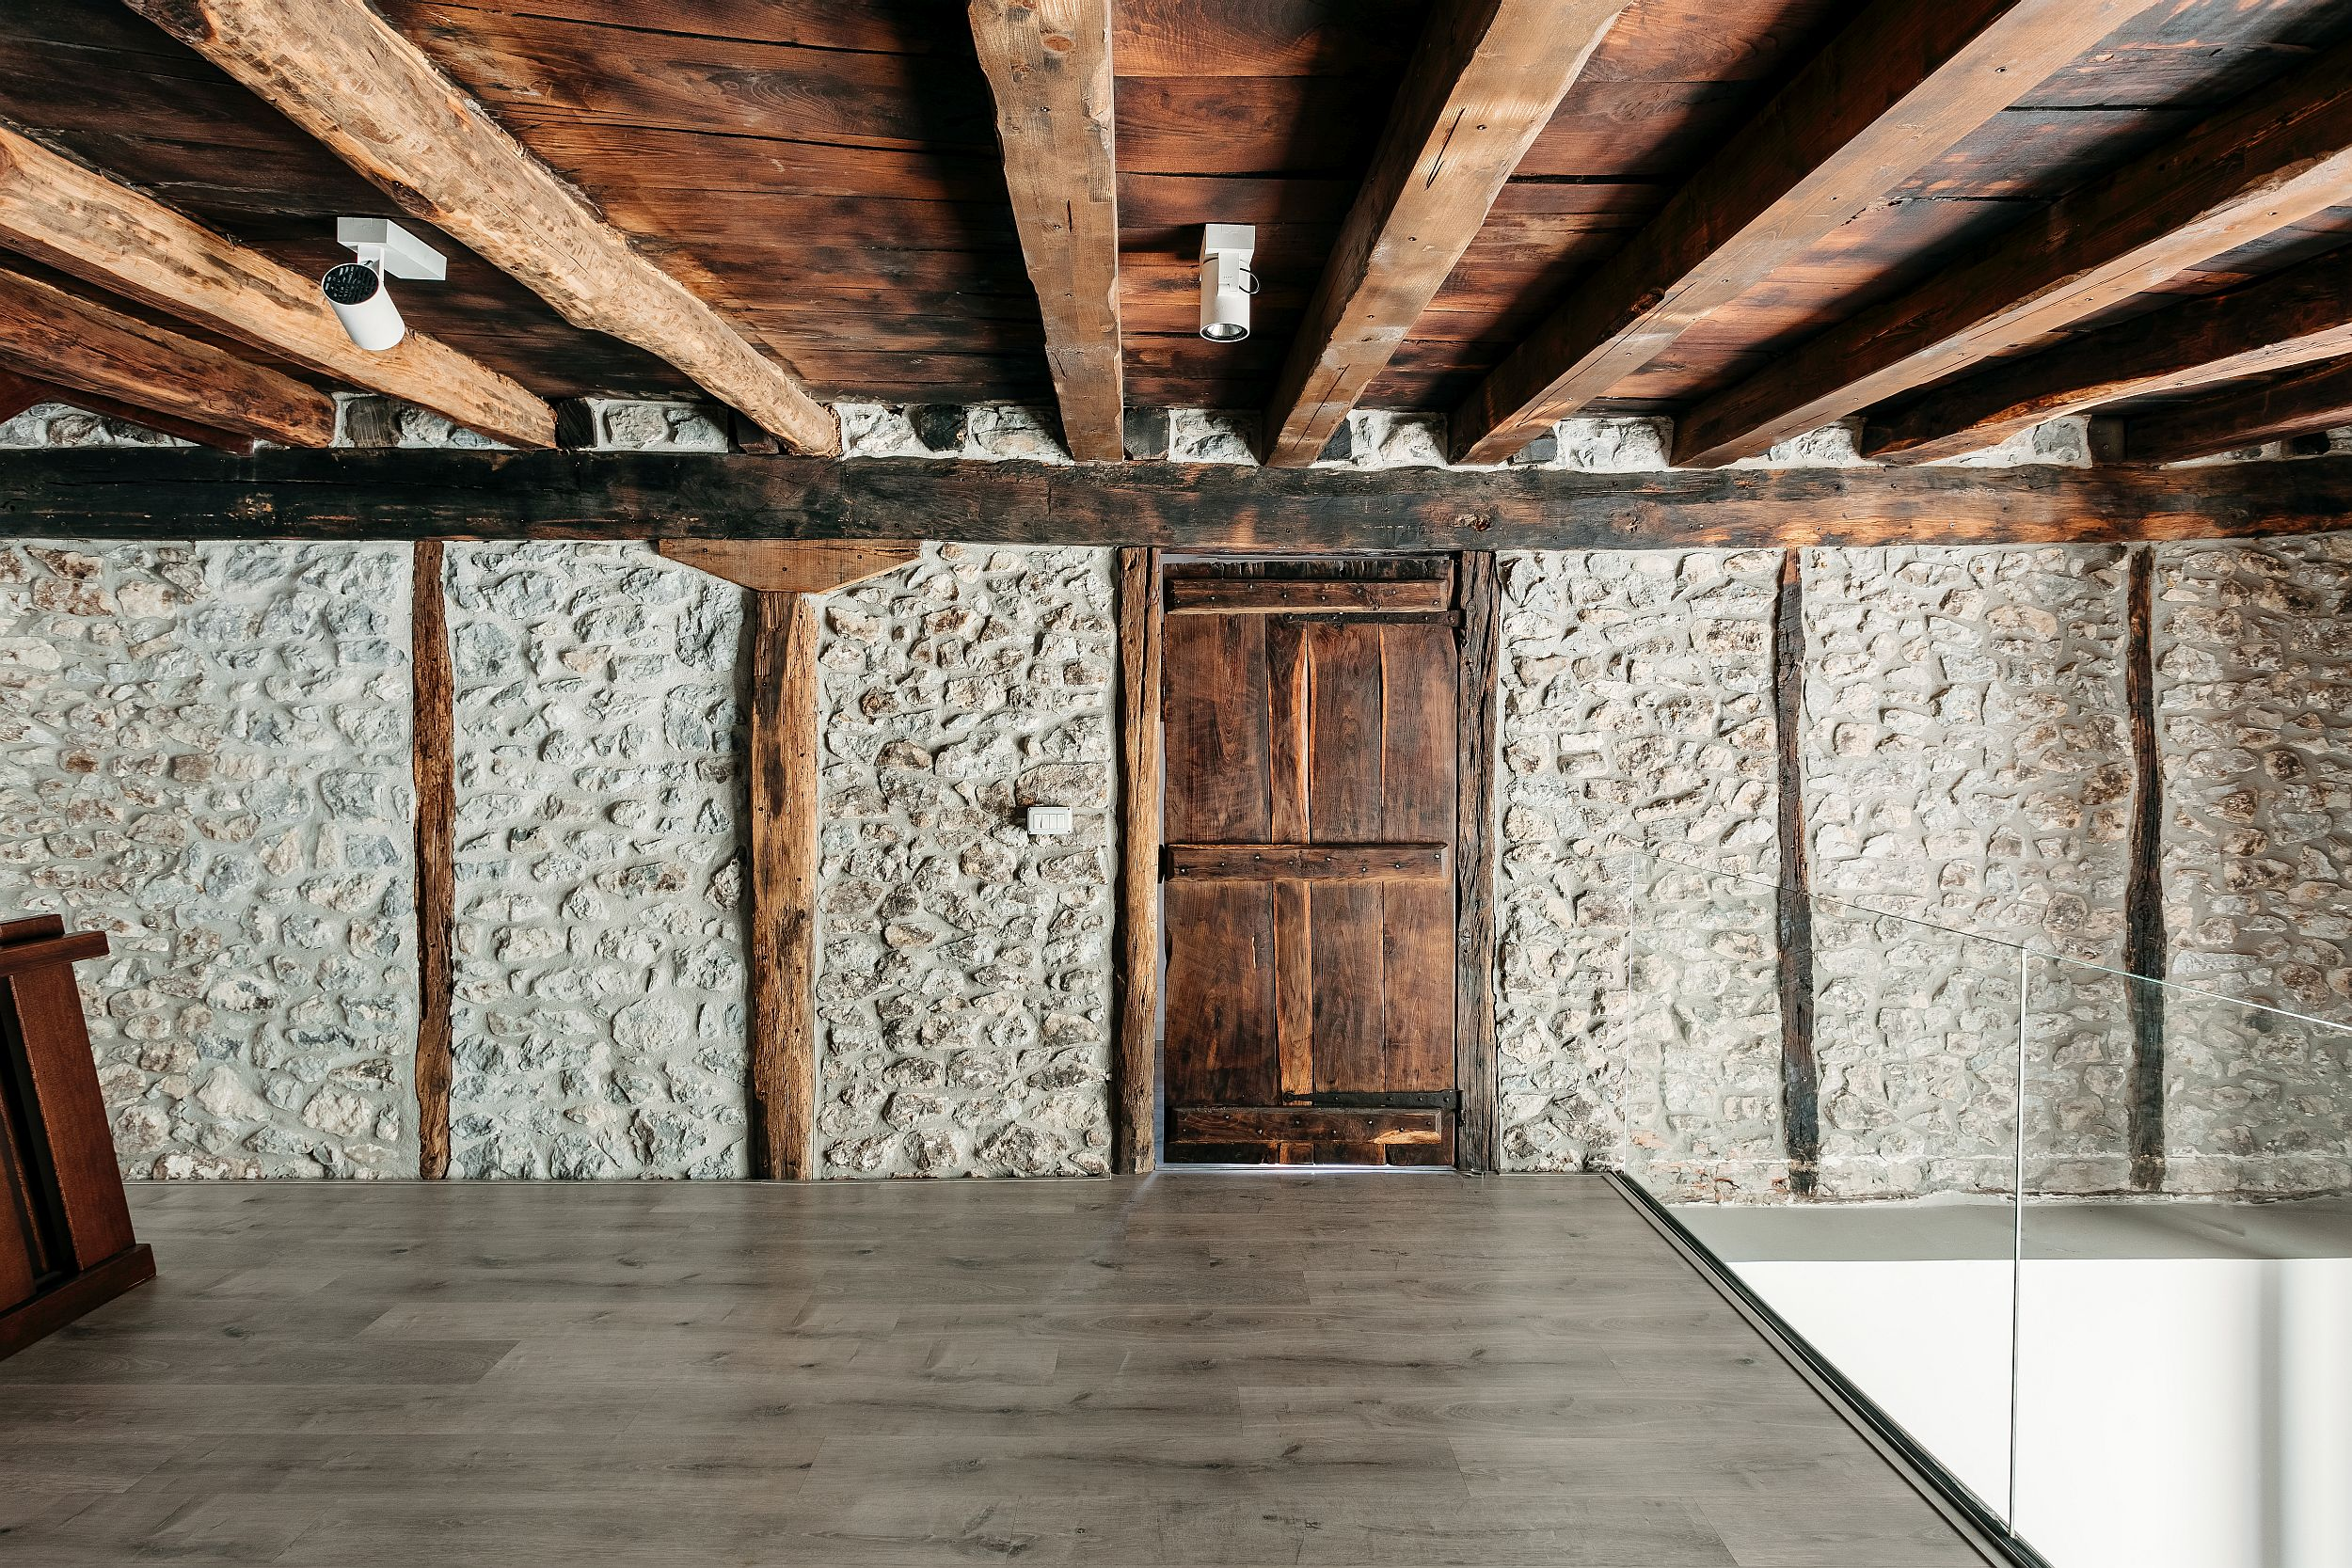 Stone walls and wooden ceiling of the home